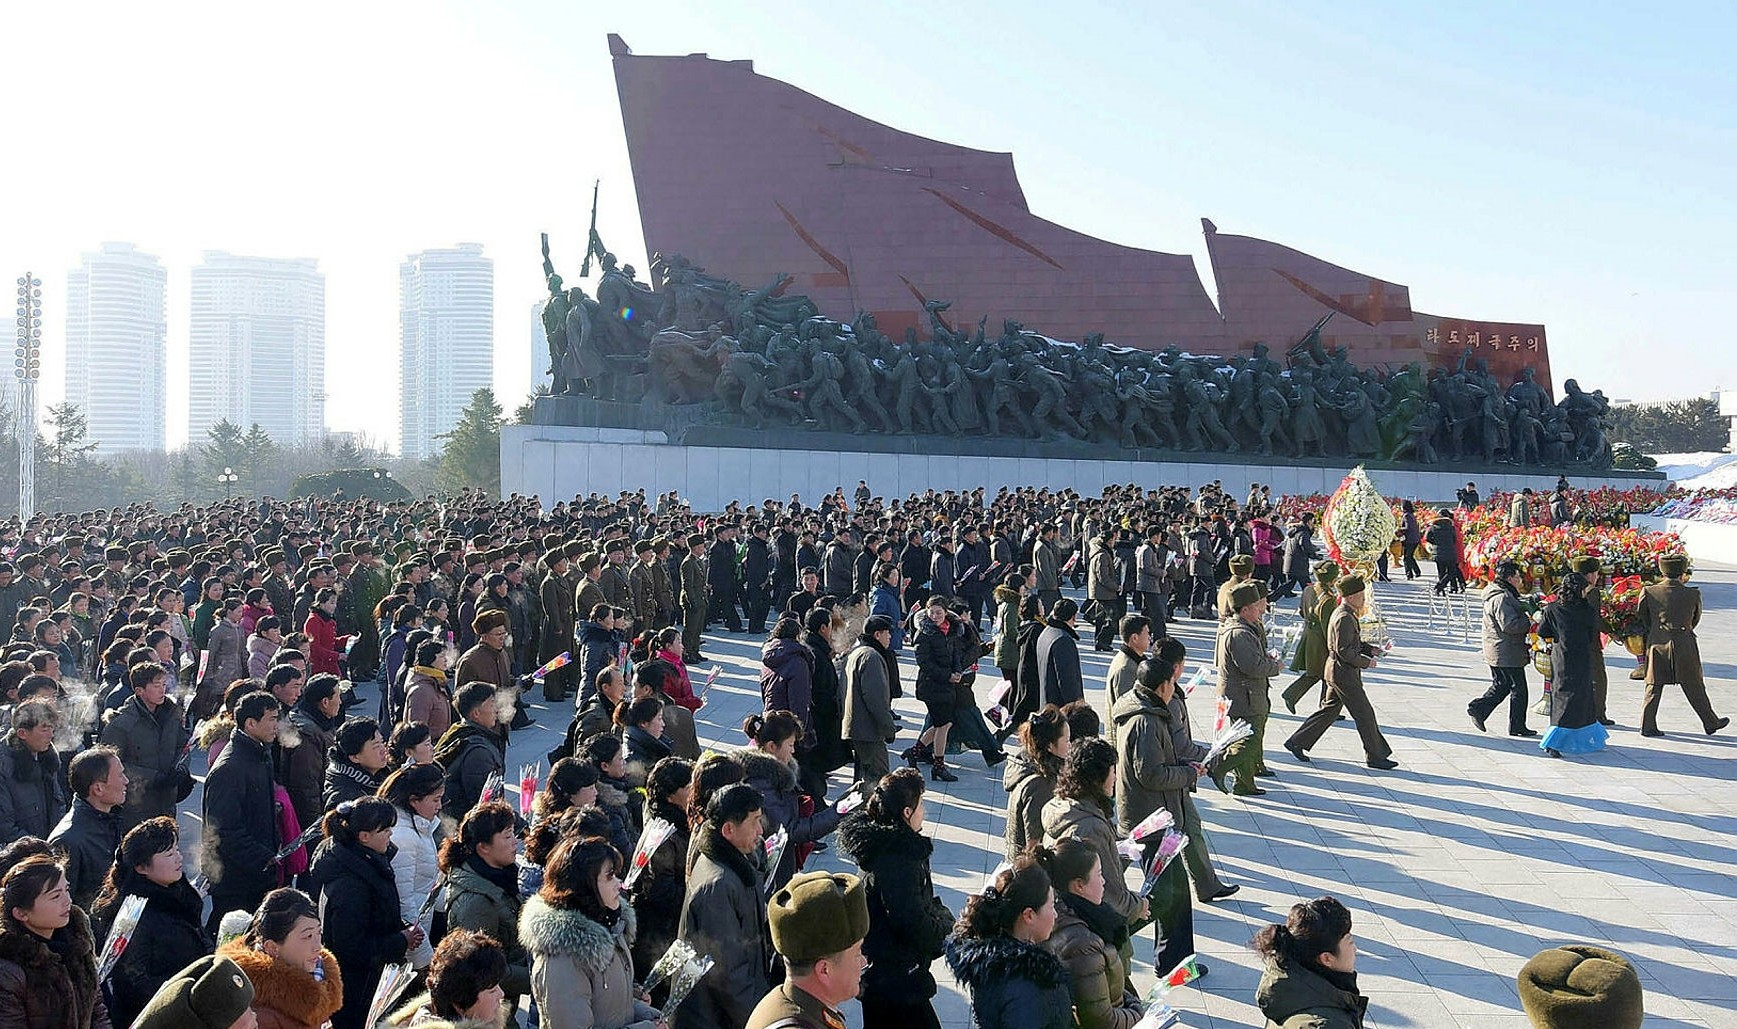 Servicepersons and civilians of the DPRK visit the statues of President Kim Il Sung and leader Kim Jong Il on the occasion of the greatest memorial day of the nation, in this photo released by KCNA in Pyongyang December 17, 2017. (KCNA via Reuters)